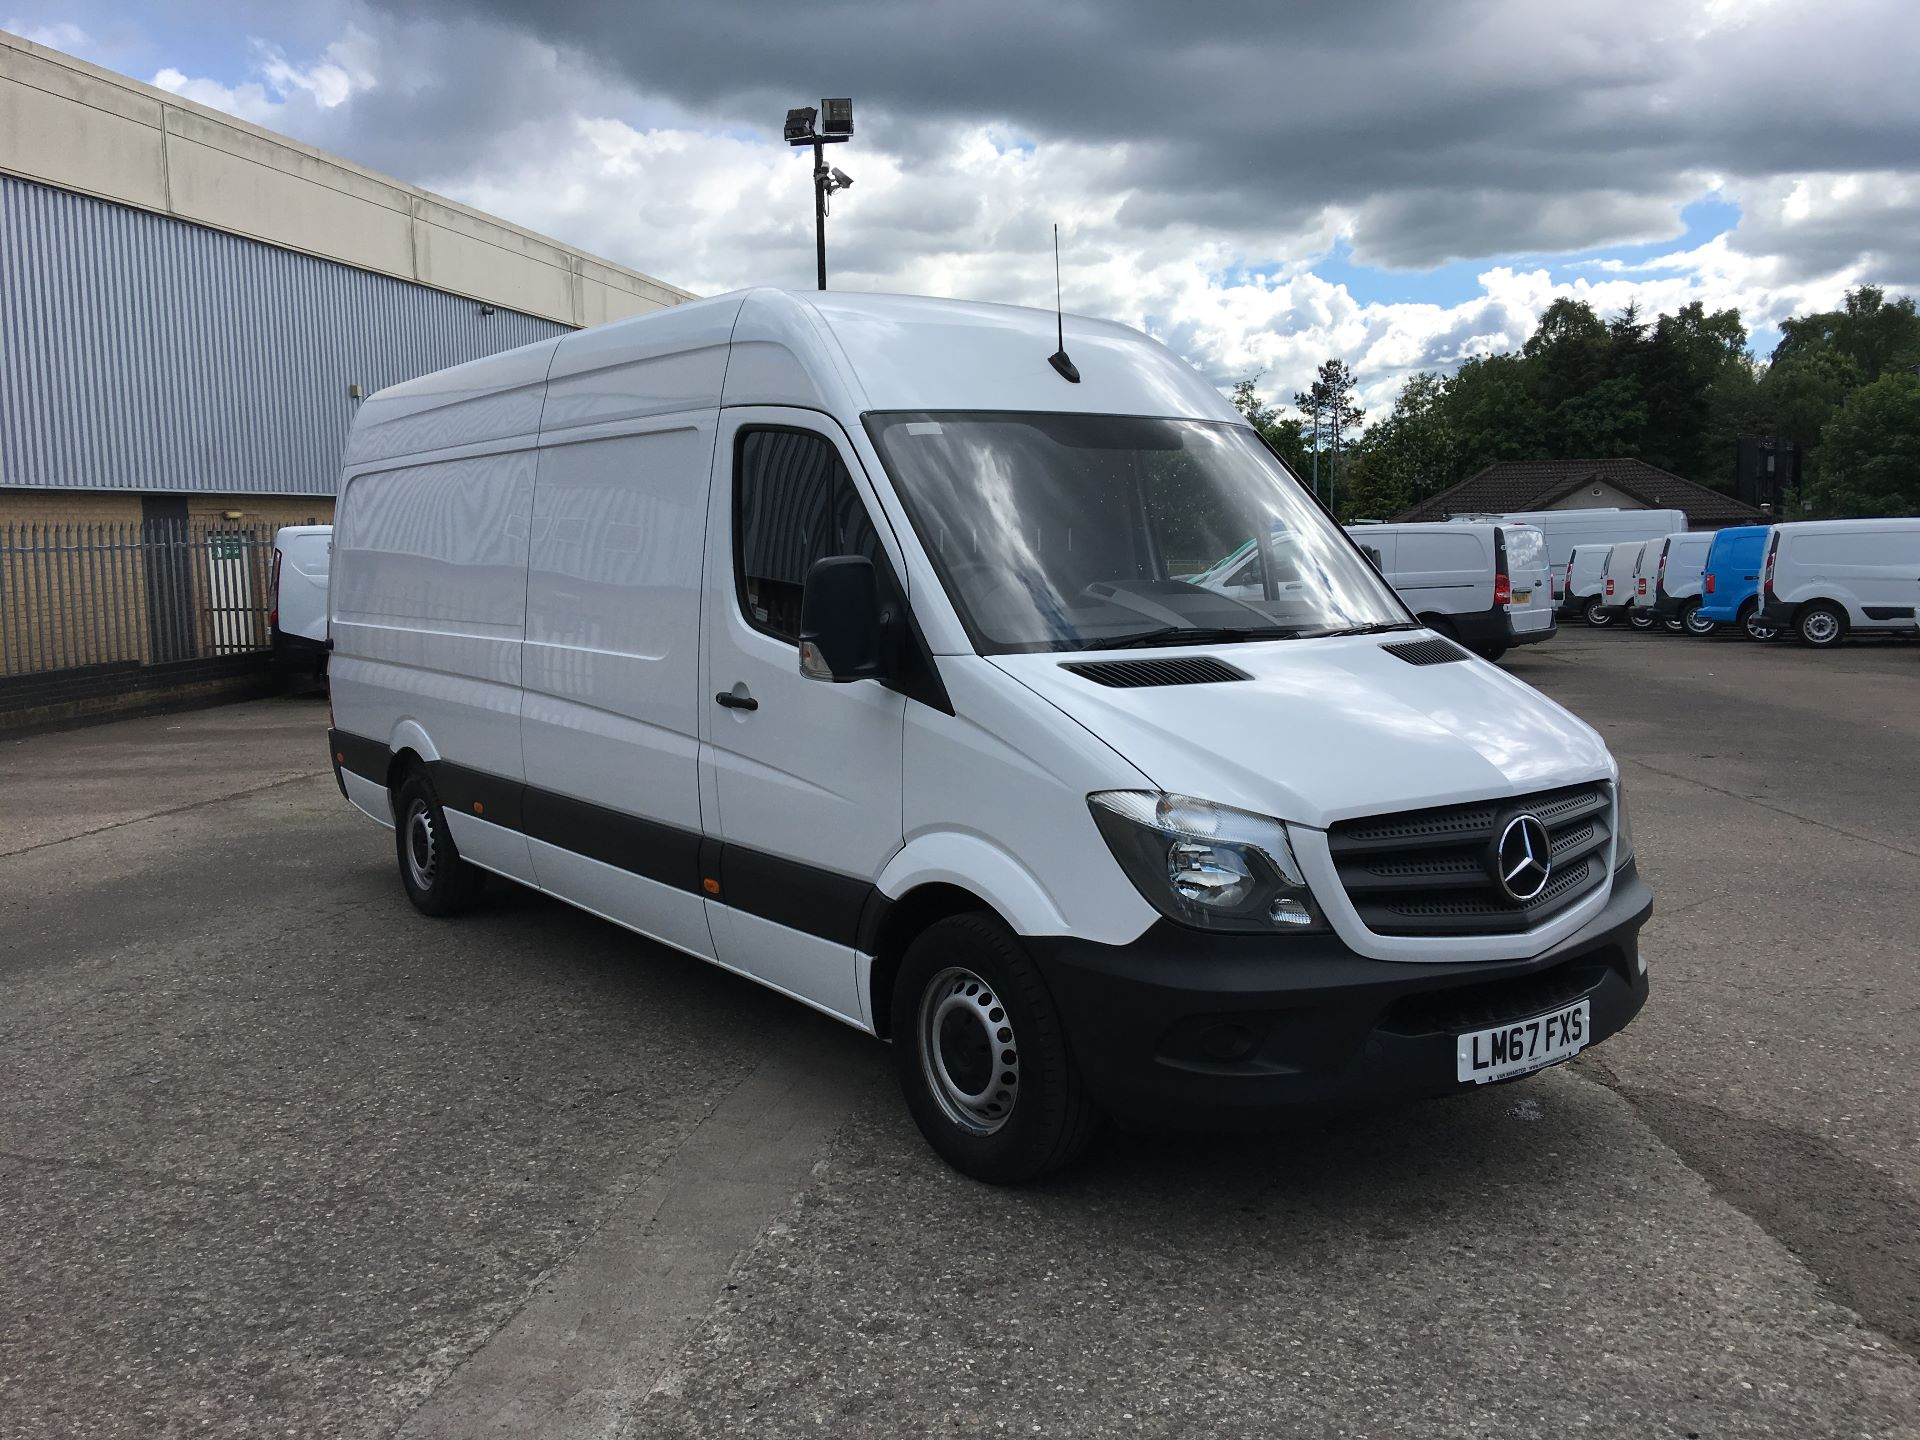 2017 Mercedes-Benz Sprinter 314 CDI LWB HIGH ROOF VAN EURO 6 (LM67FXS)